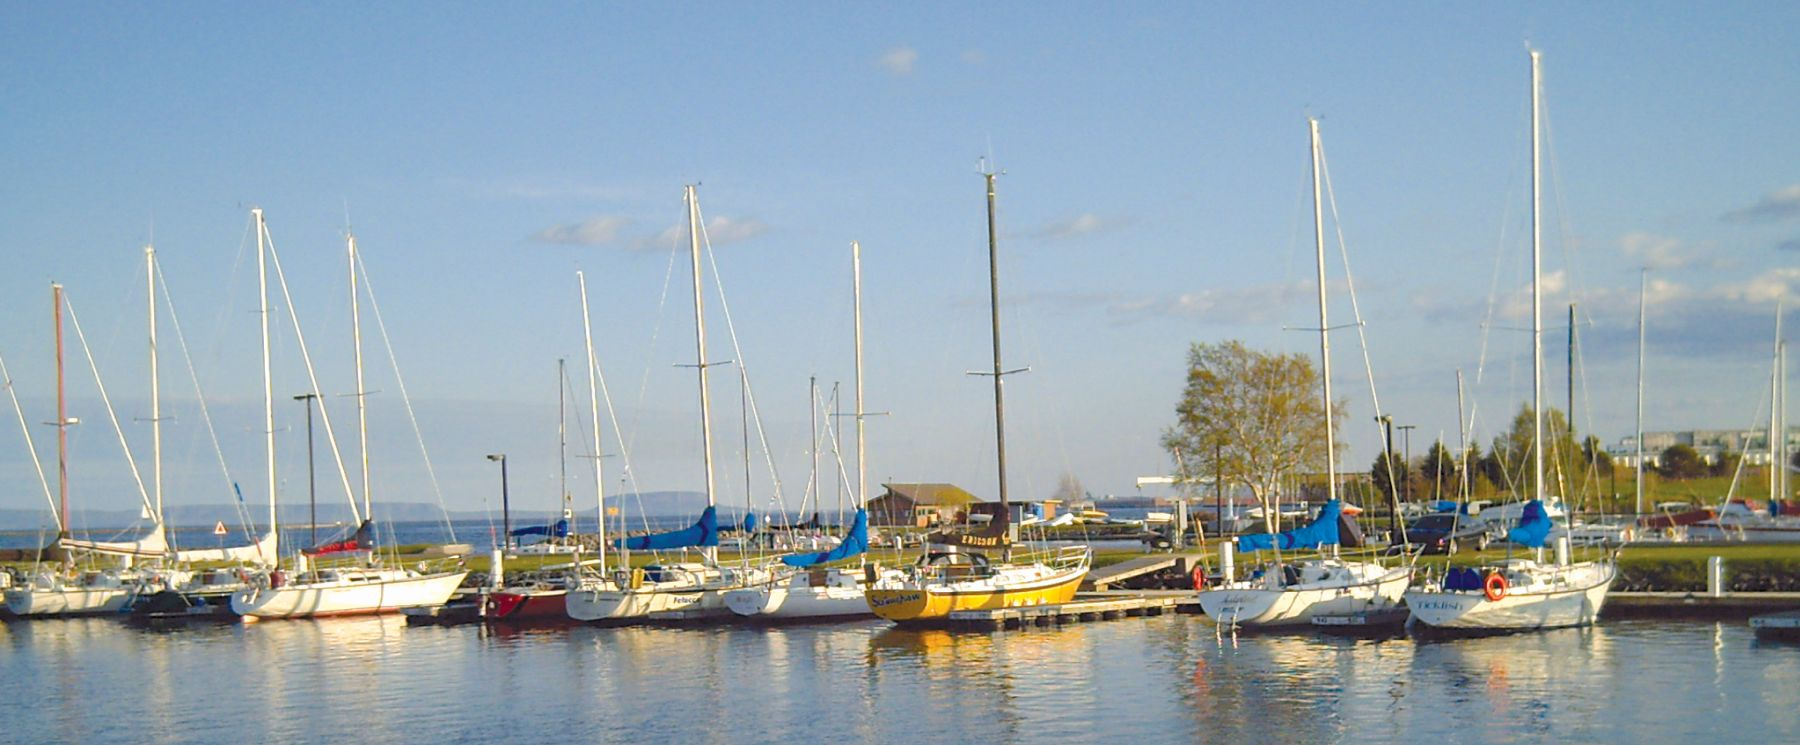 Boats at the thunder bay marina